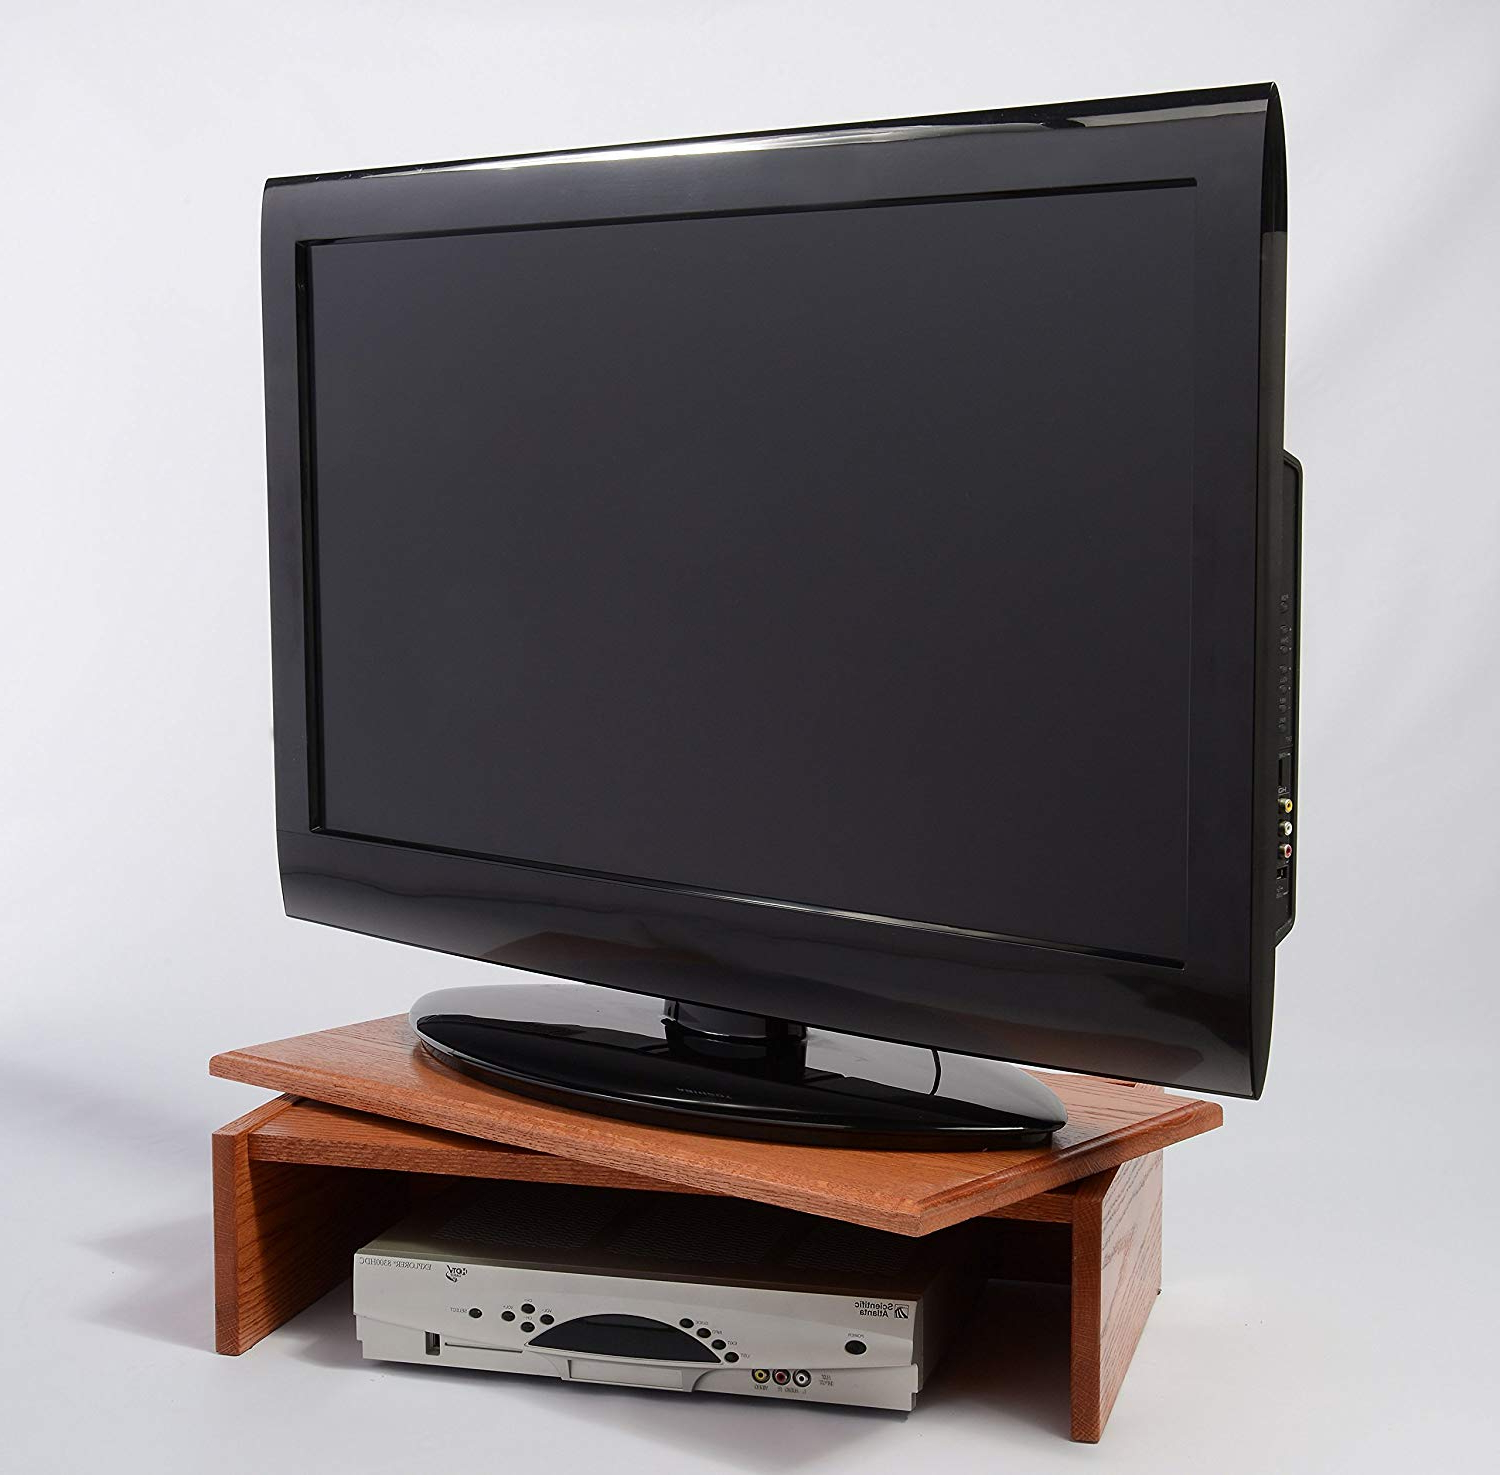 Preferred Amazon : Lazy Susan Tv Riser : Other Products : Everything Else Within Swivel Tv Riser (View 5 of 20)